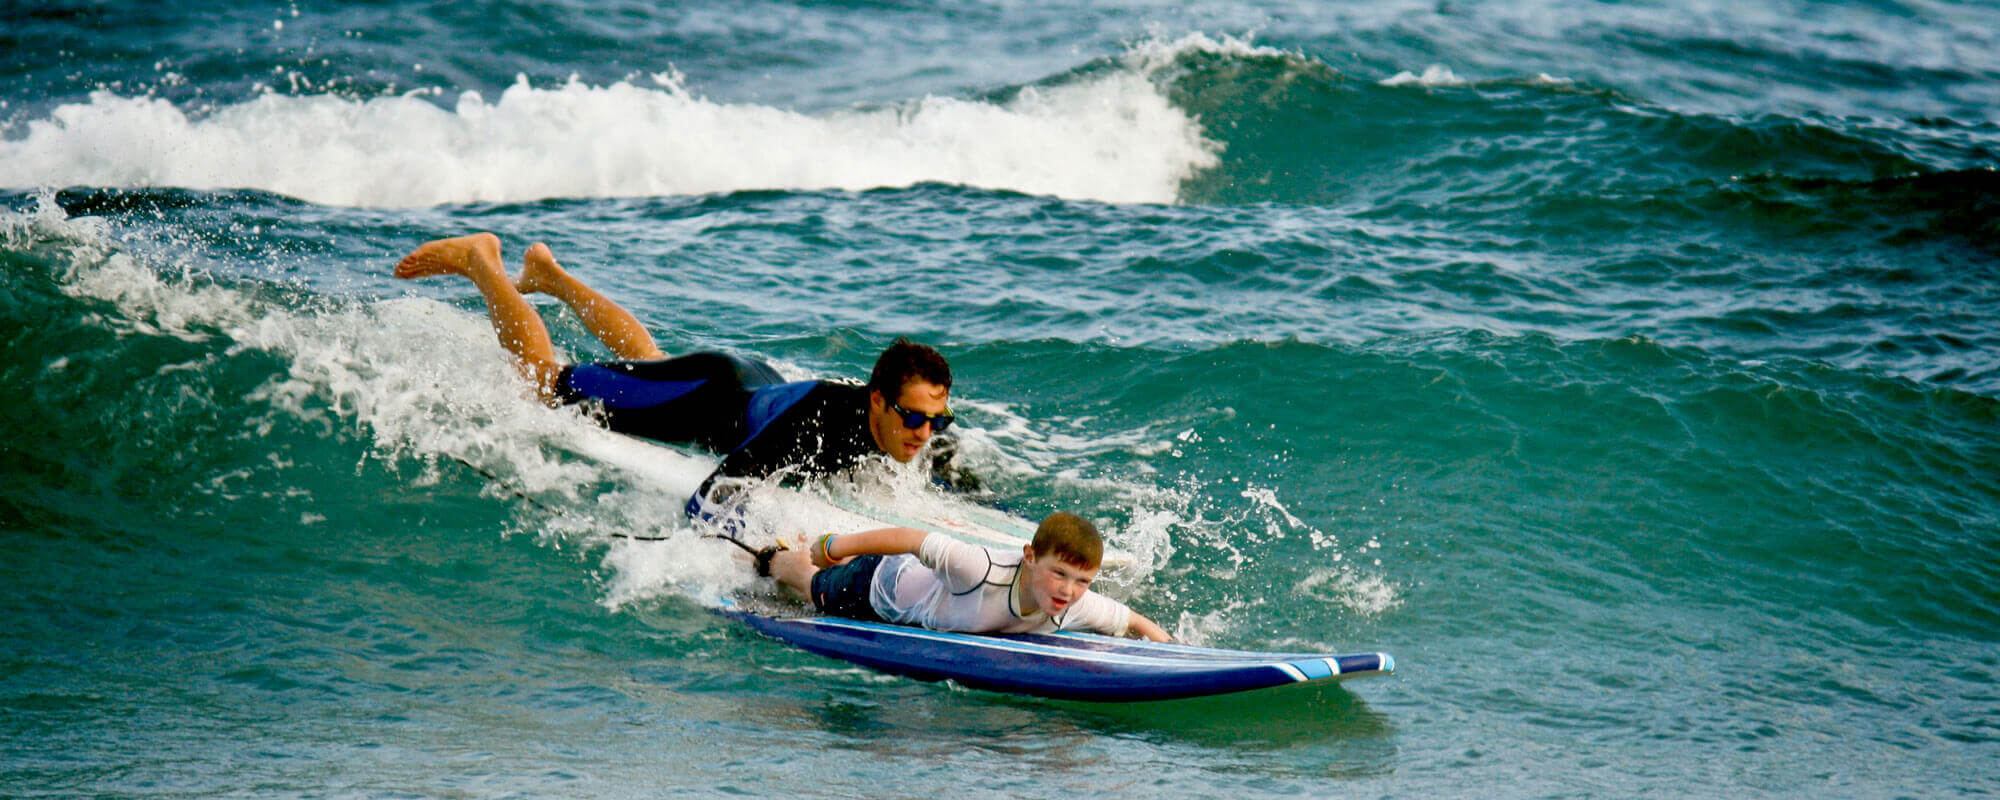 Oahu Surf Lessons, Laie, Hawaii